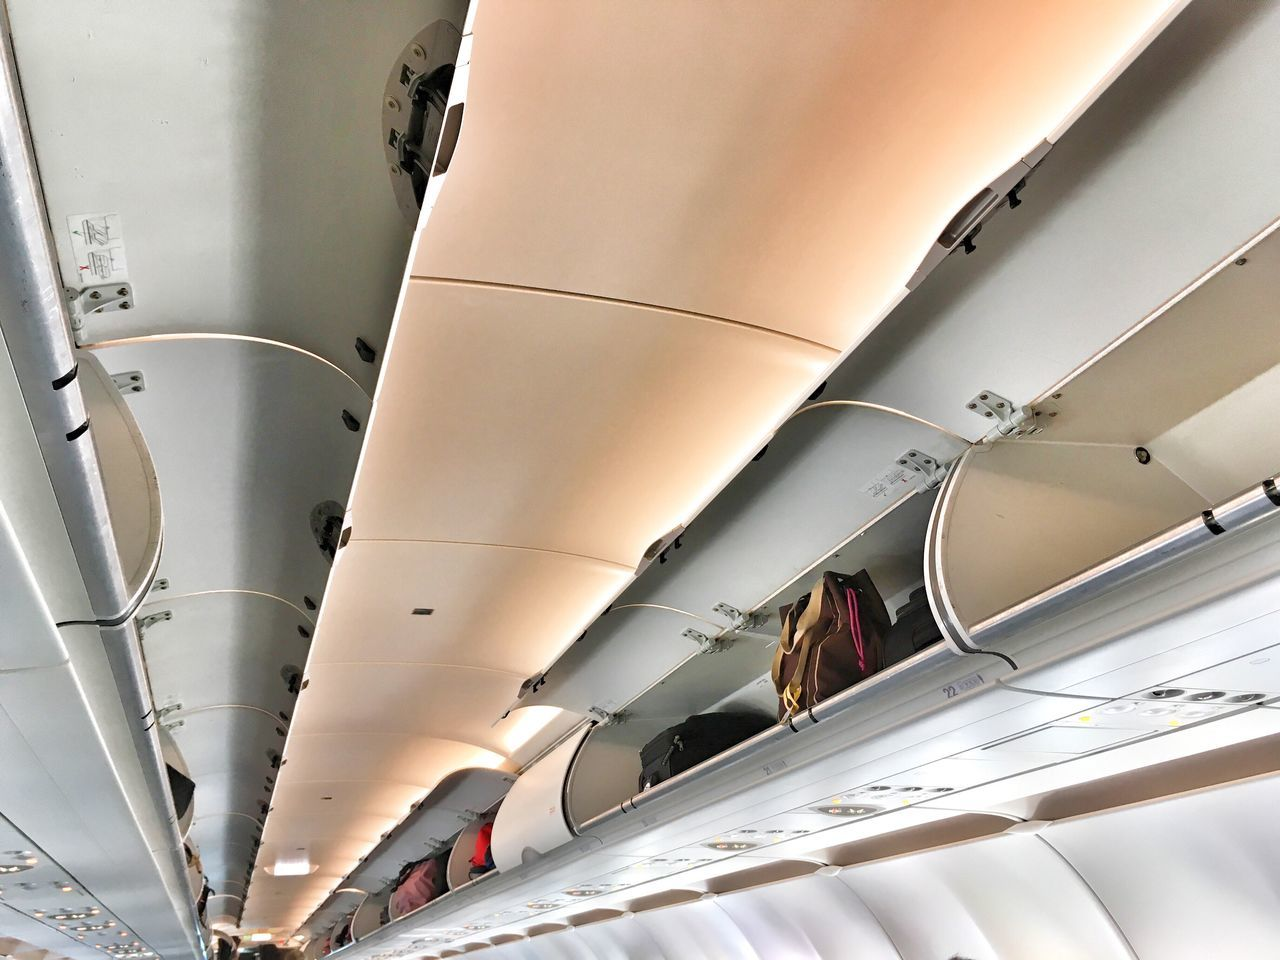 Overhead lockers in a passenger jetliner. Ceiling Air Vehicle Low Angle View Airplane Overhead Lockers Overhead Storage Jetliner Airliner Storage Travel Air Travel  Holiday Holidays No People Break The Mold Transportation Carry On Baggage